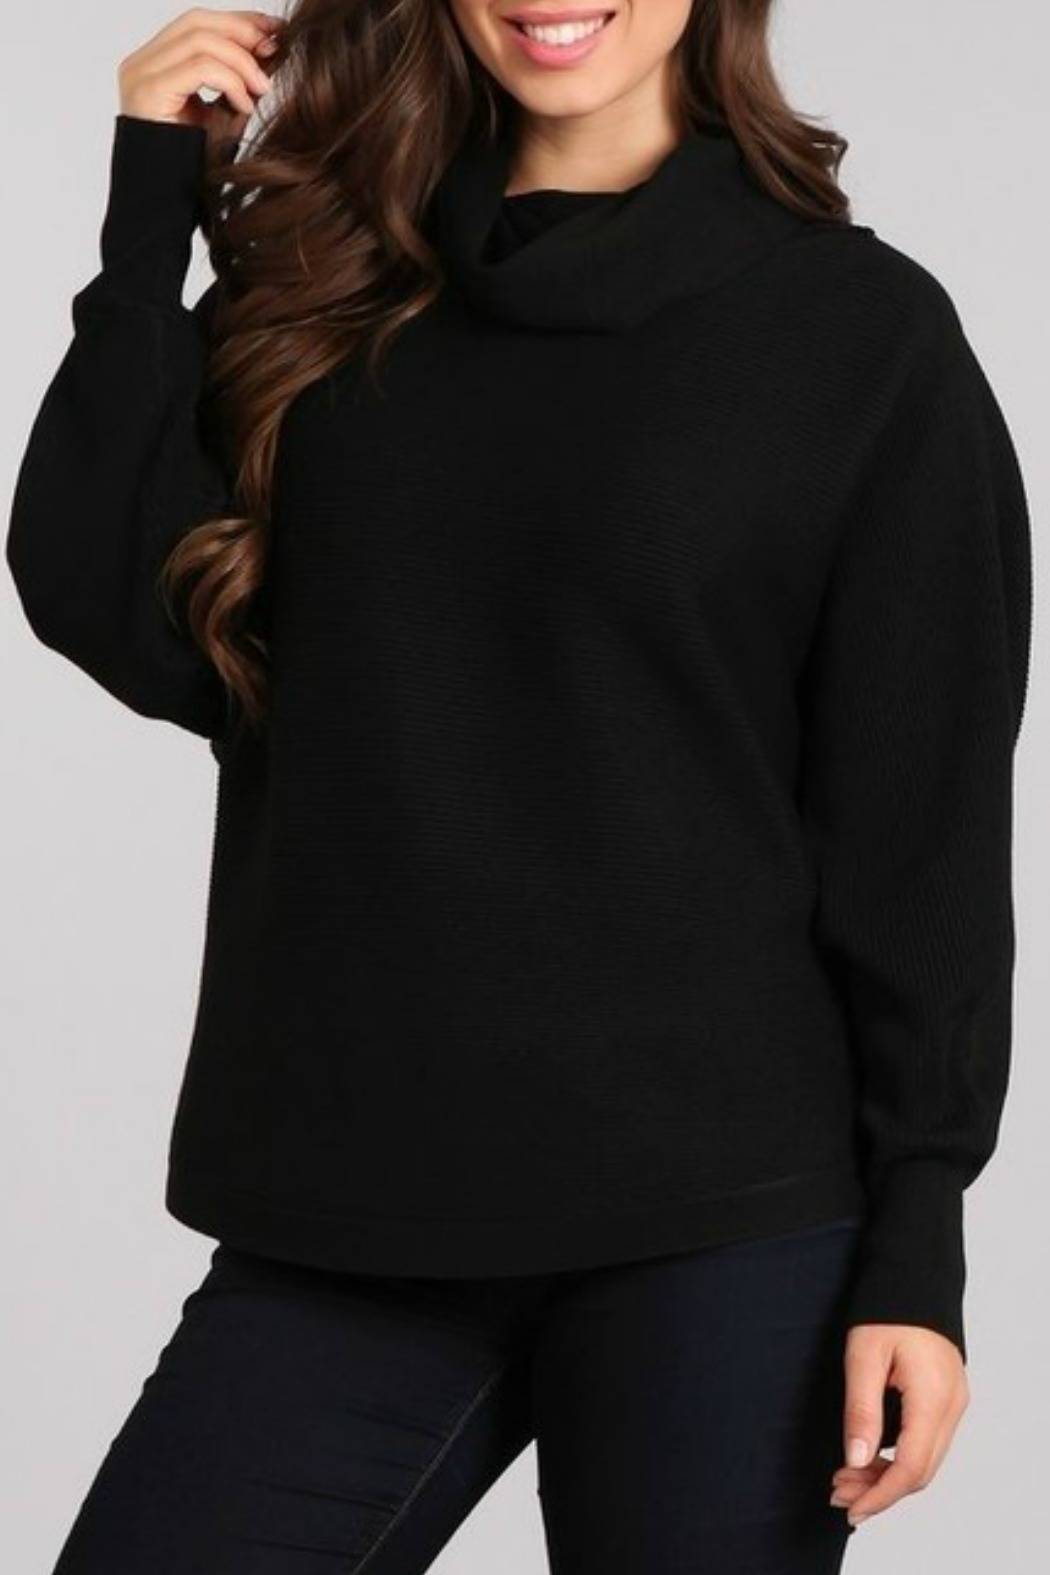 725511d33b2 Blvd Ribbed Knit Sweater from Louisiana by Bella Bella - Metairie ...